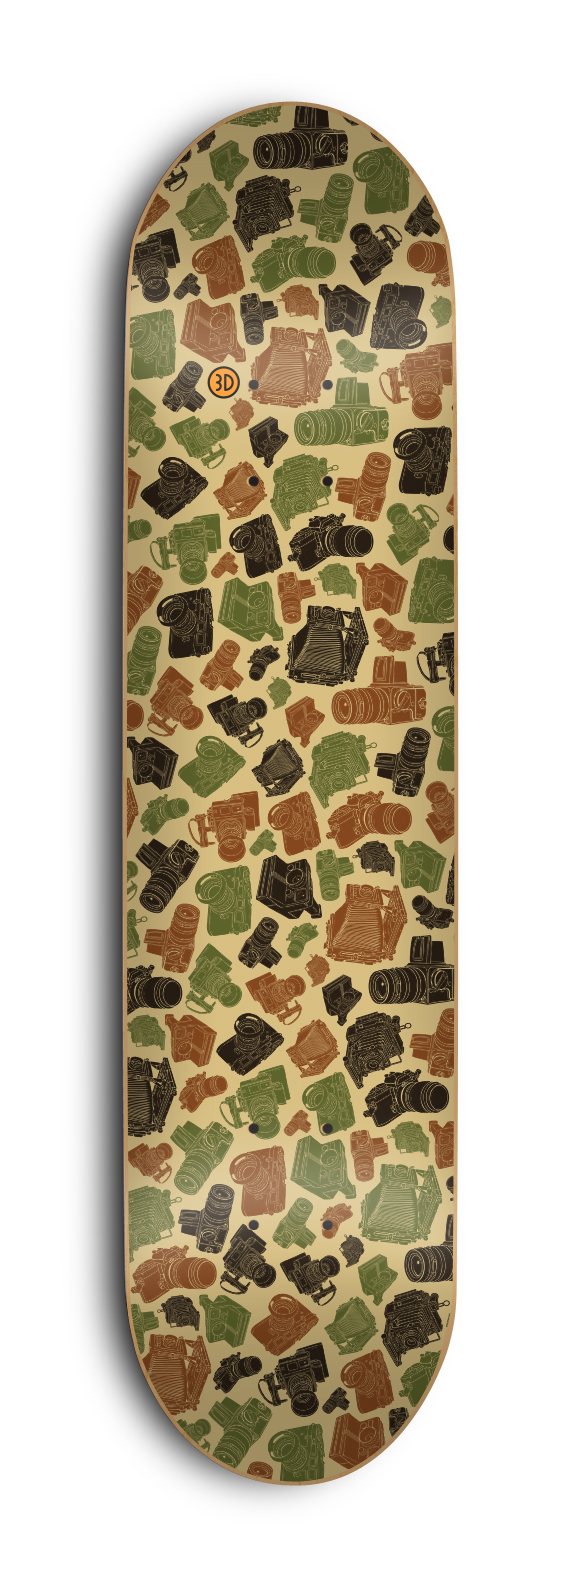 3D_FL13_Deck_Mock_Camera_Camo.jpg